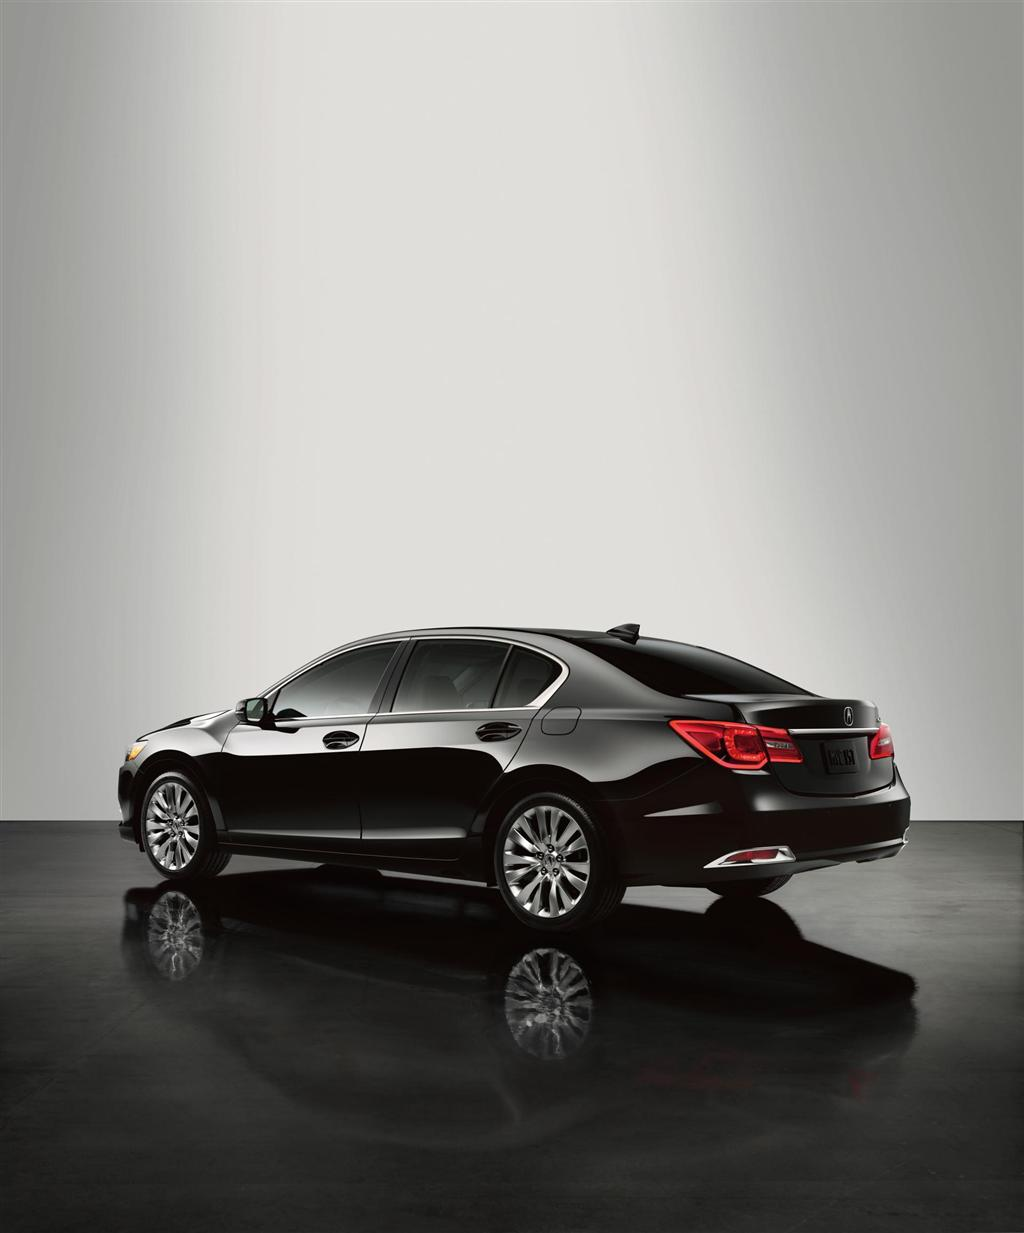 2014 Acura RLX Image. Photo 104 Of 111